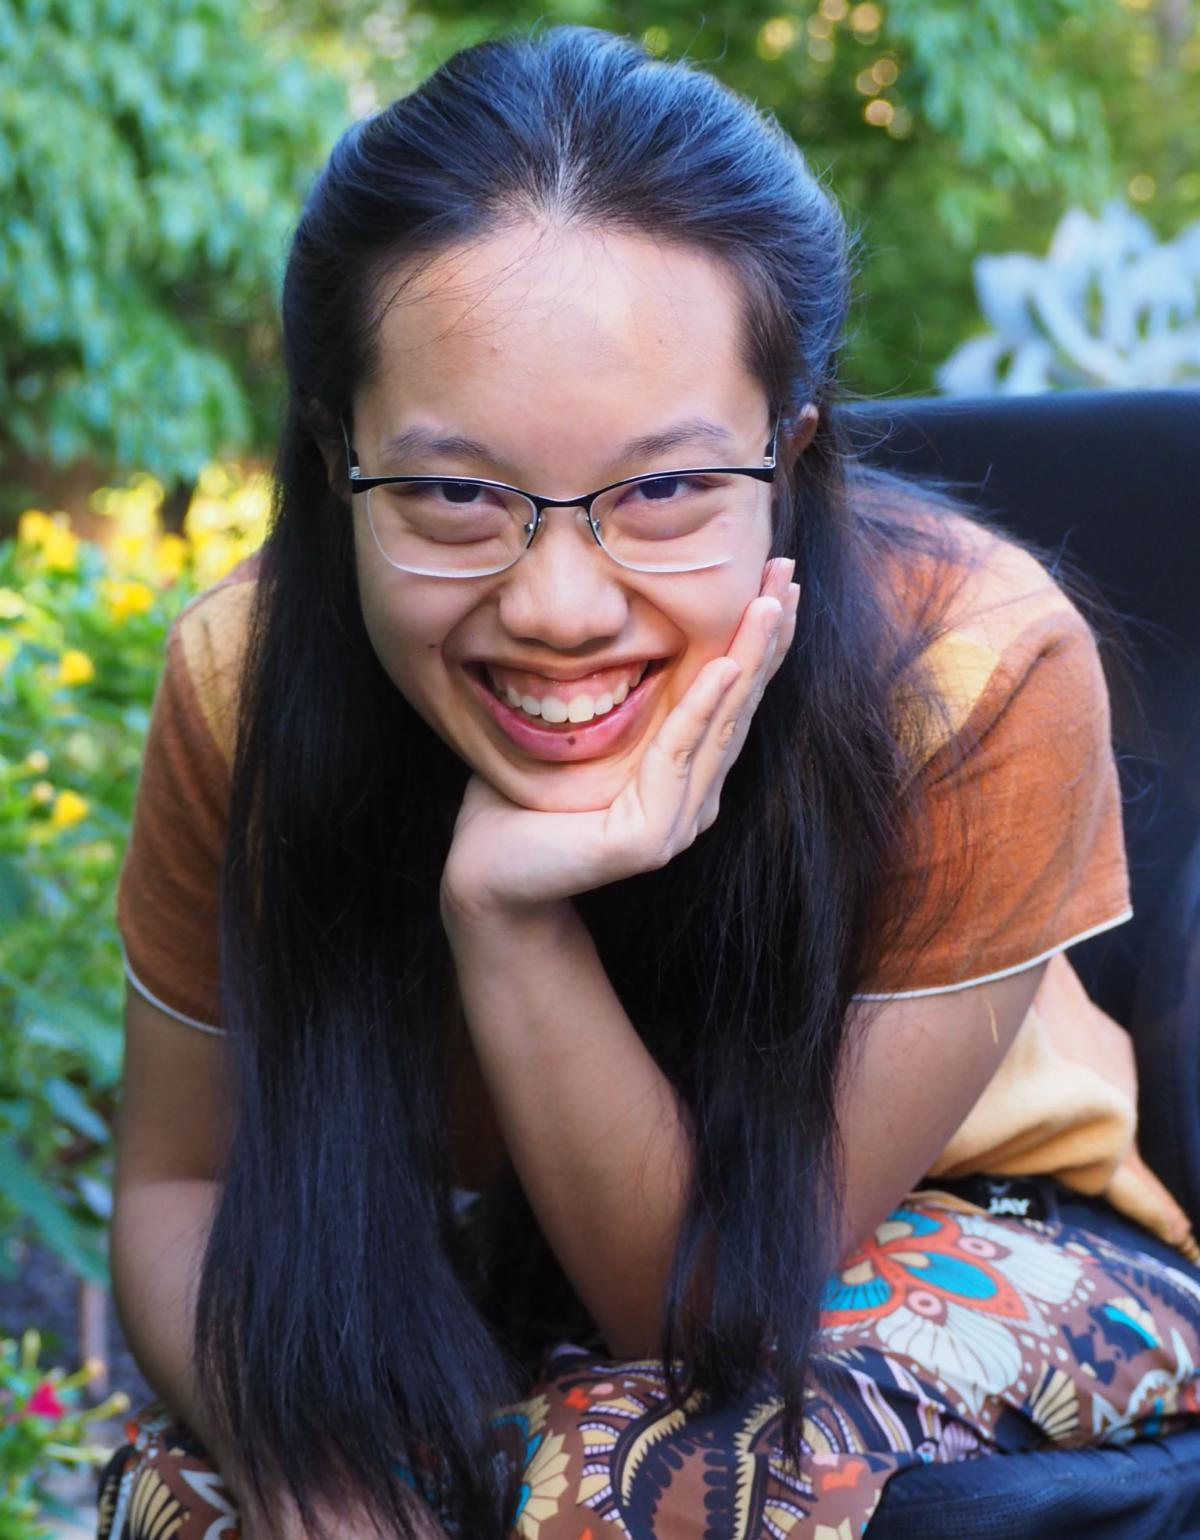 Student spotlight June 2021. Peach is a young woman with long black hair and glasses. In this photo, she is smiling and leaning forward in her wheelchair. She is outdoors. It is a very nice photo.